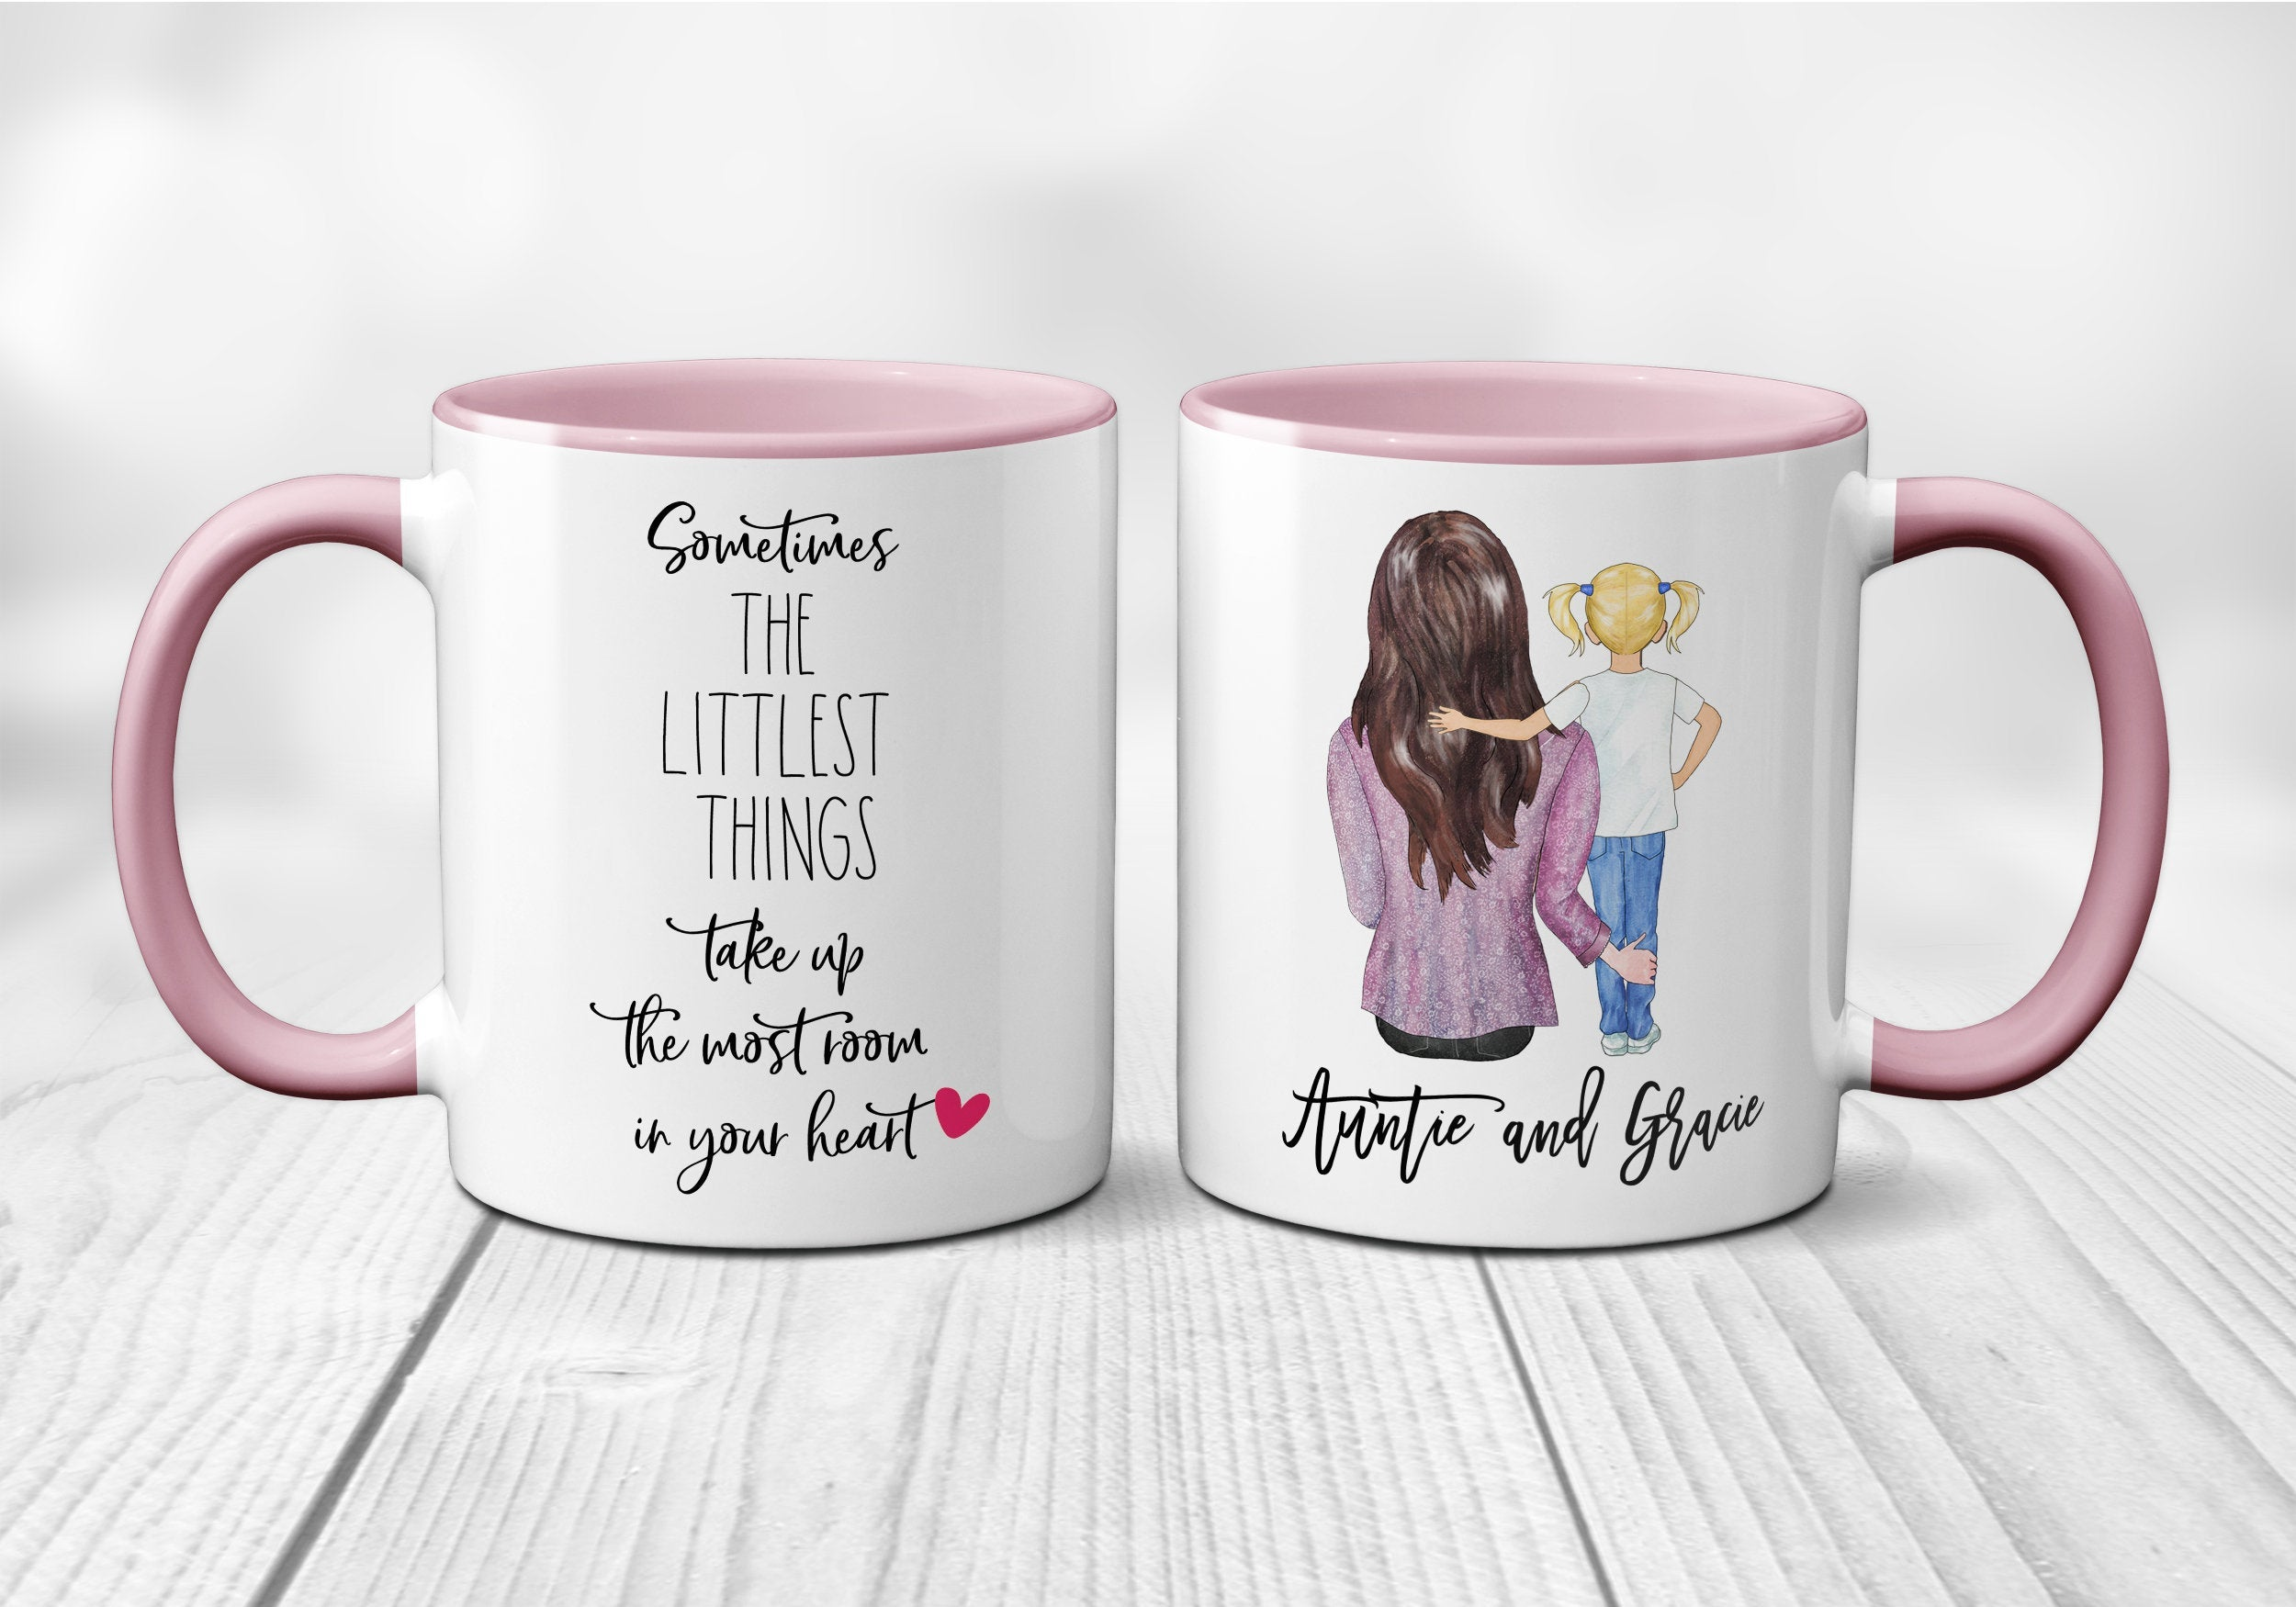 Aunt Gift Auntie Gift Custom Gift Custom Picture Coffee Mug Sometimes the Littlest Things Take up the Most Room in Your Heart S1094